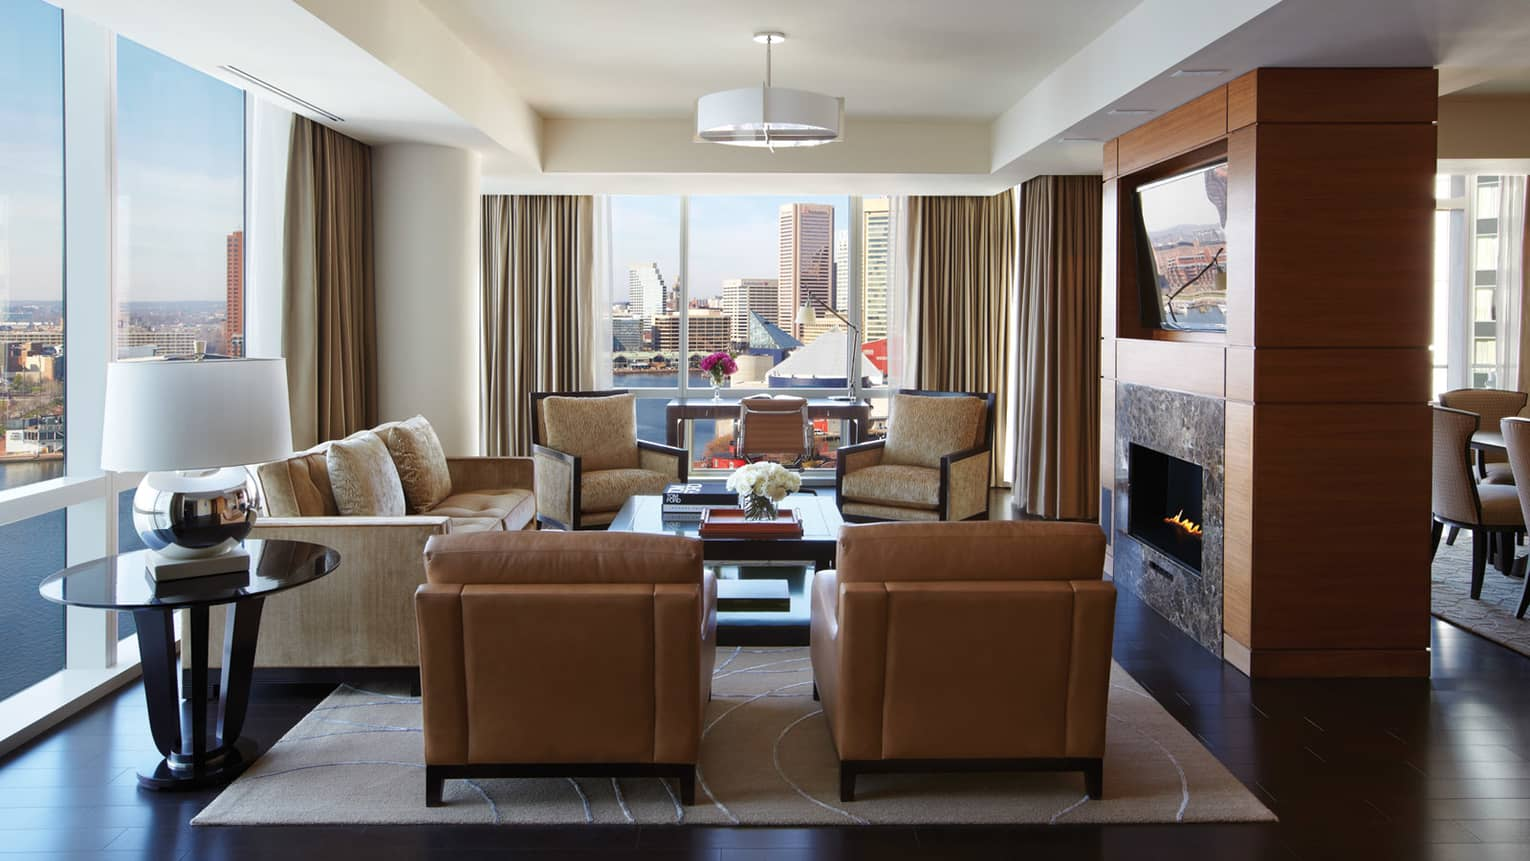 Serene Suite brown leather armchairs, sofa, chairs around gas fireplace, corner windows